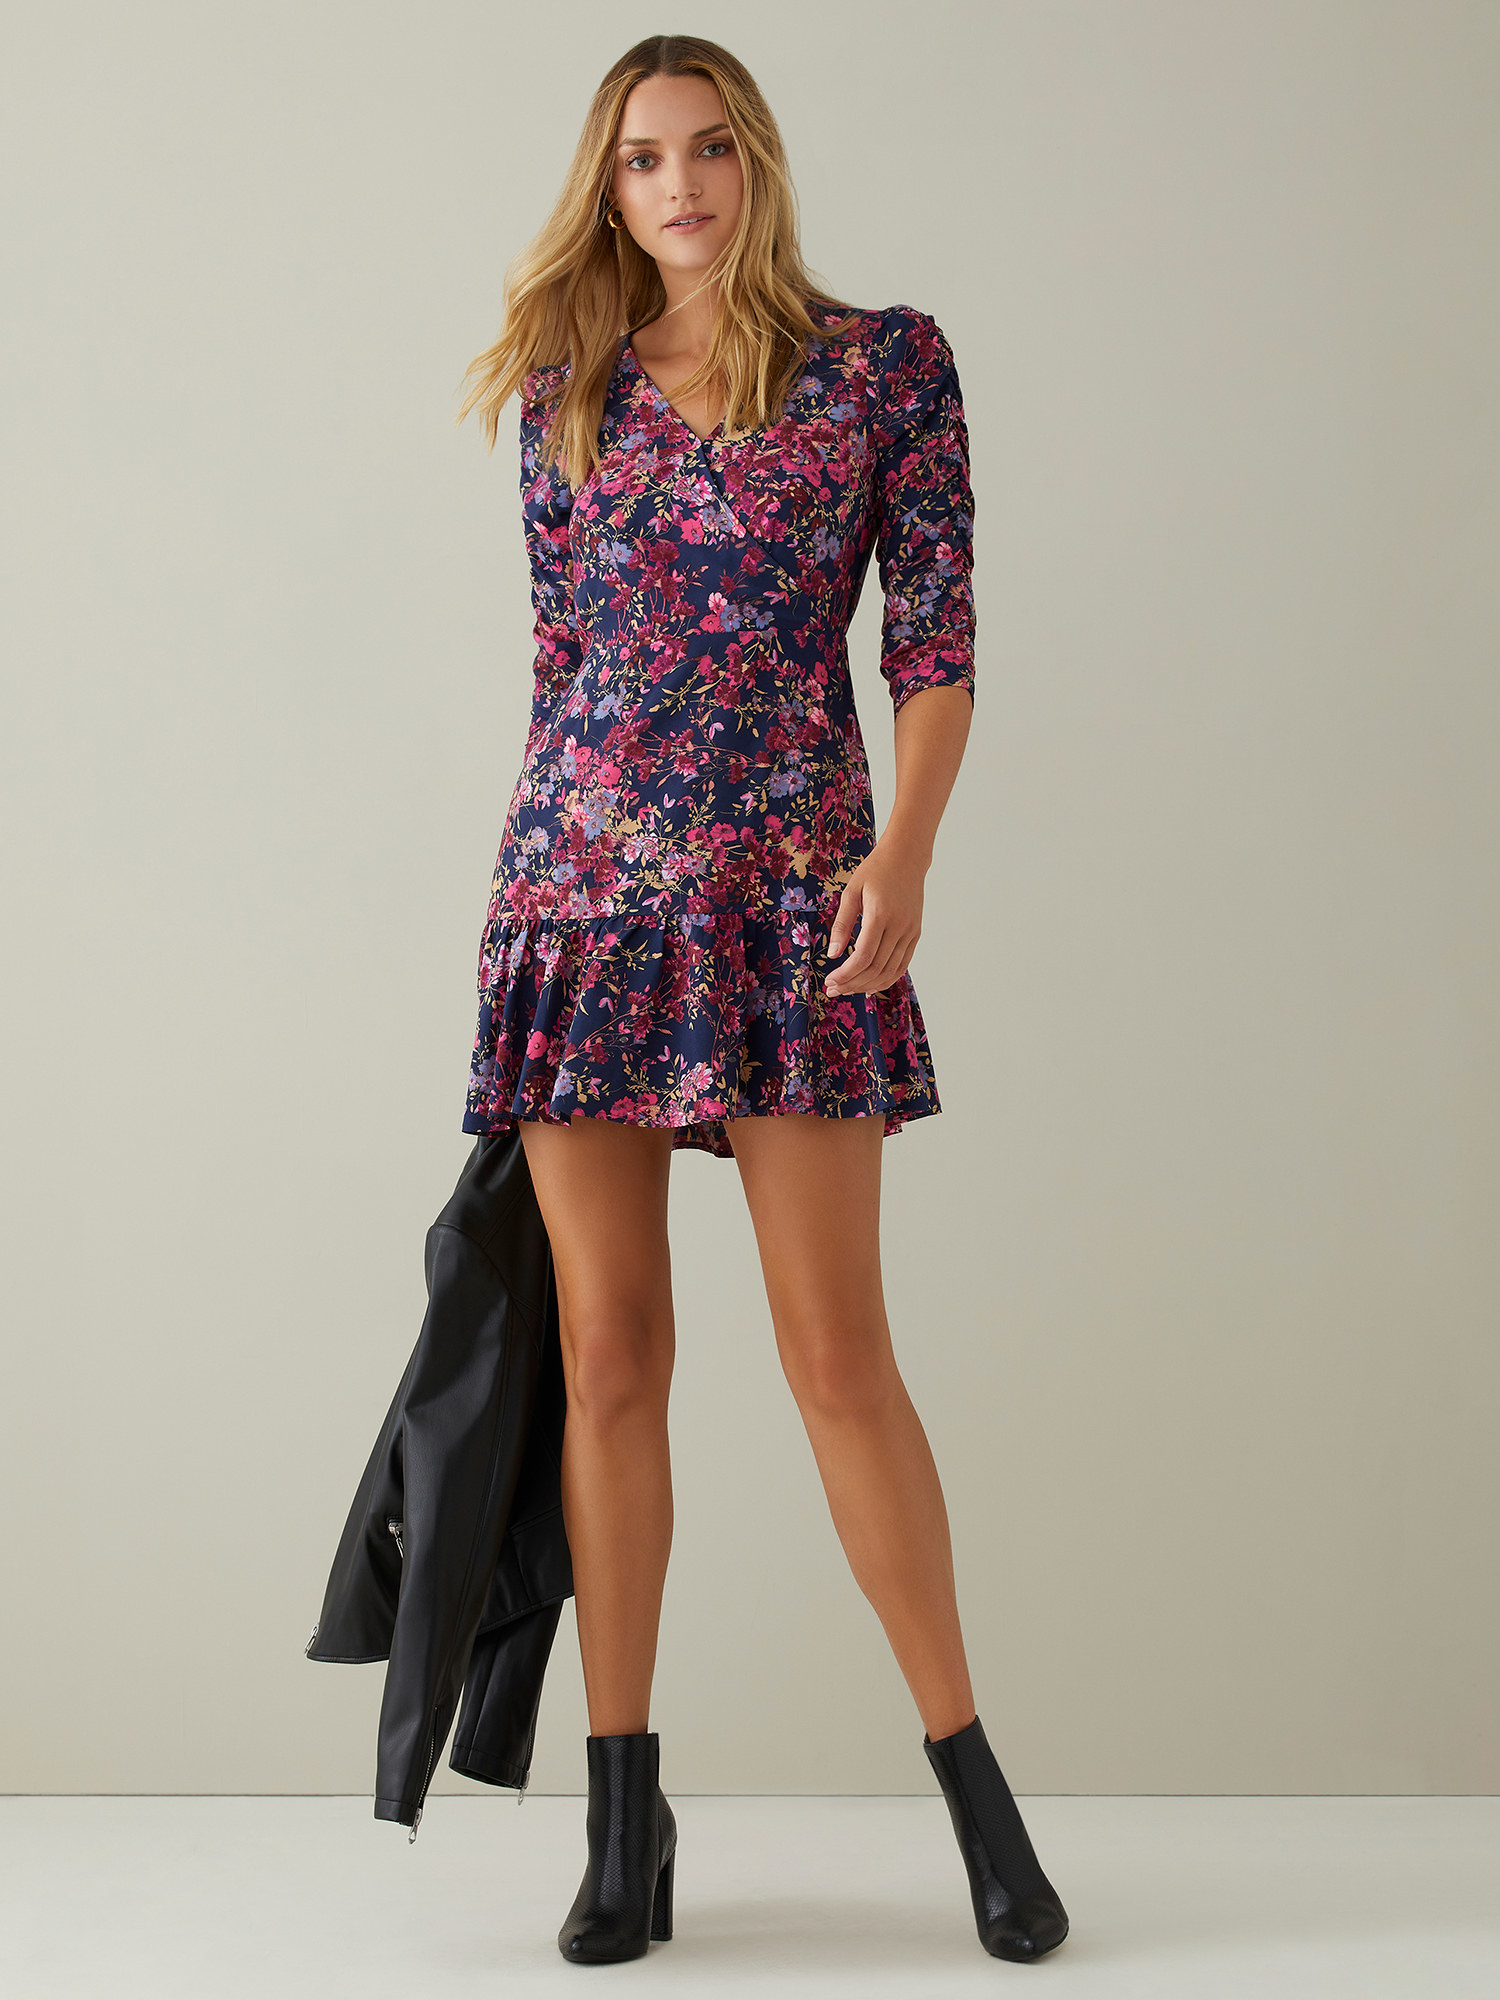 The floral-print mini dress